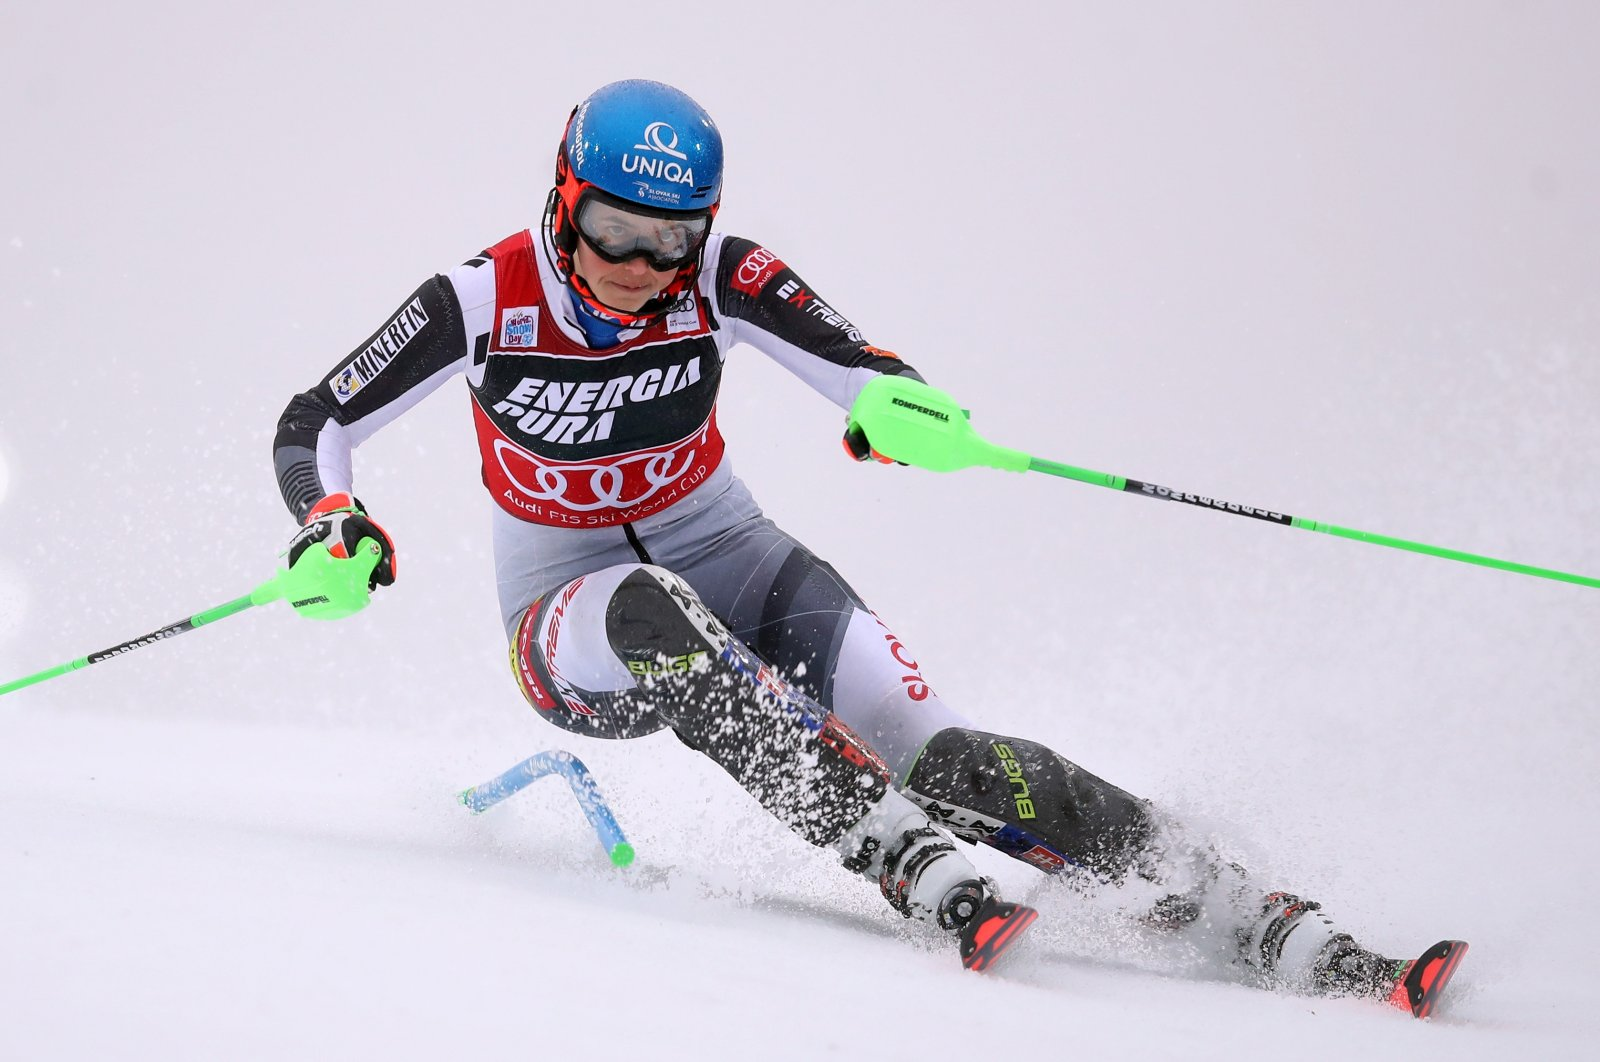 Petra Vlhova of Slovakia clears the pole during the race, in Zagreb, Croatia, Jan. 3, 2021. (AFP Photo)